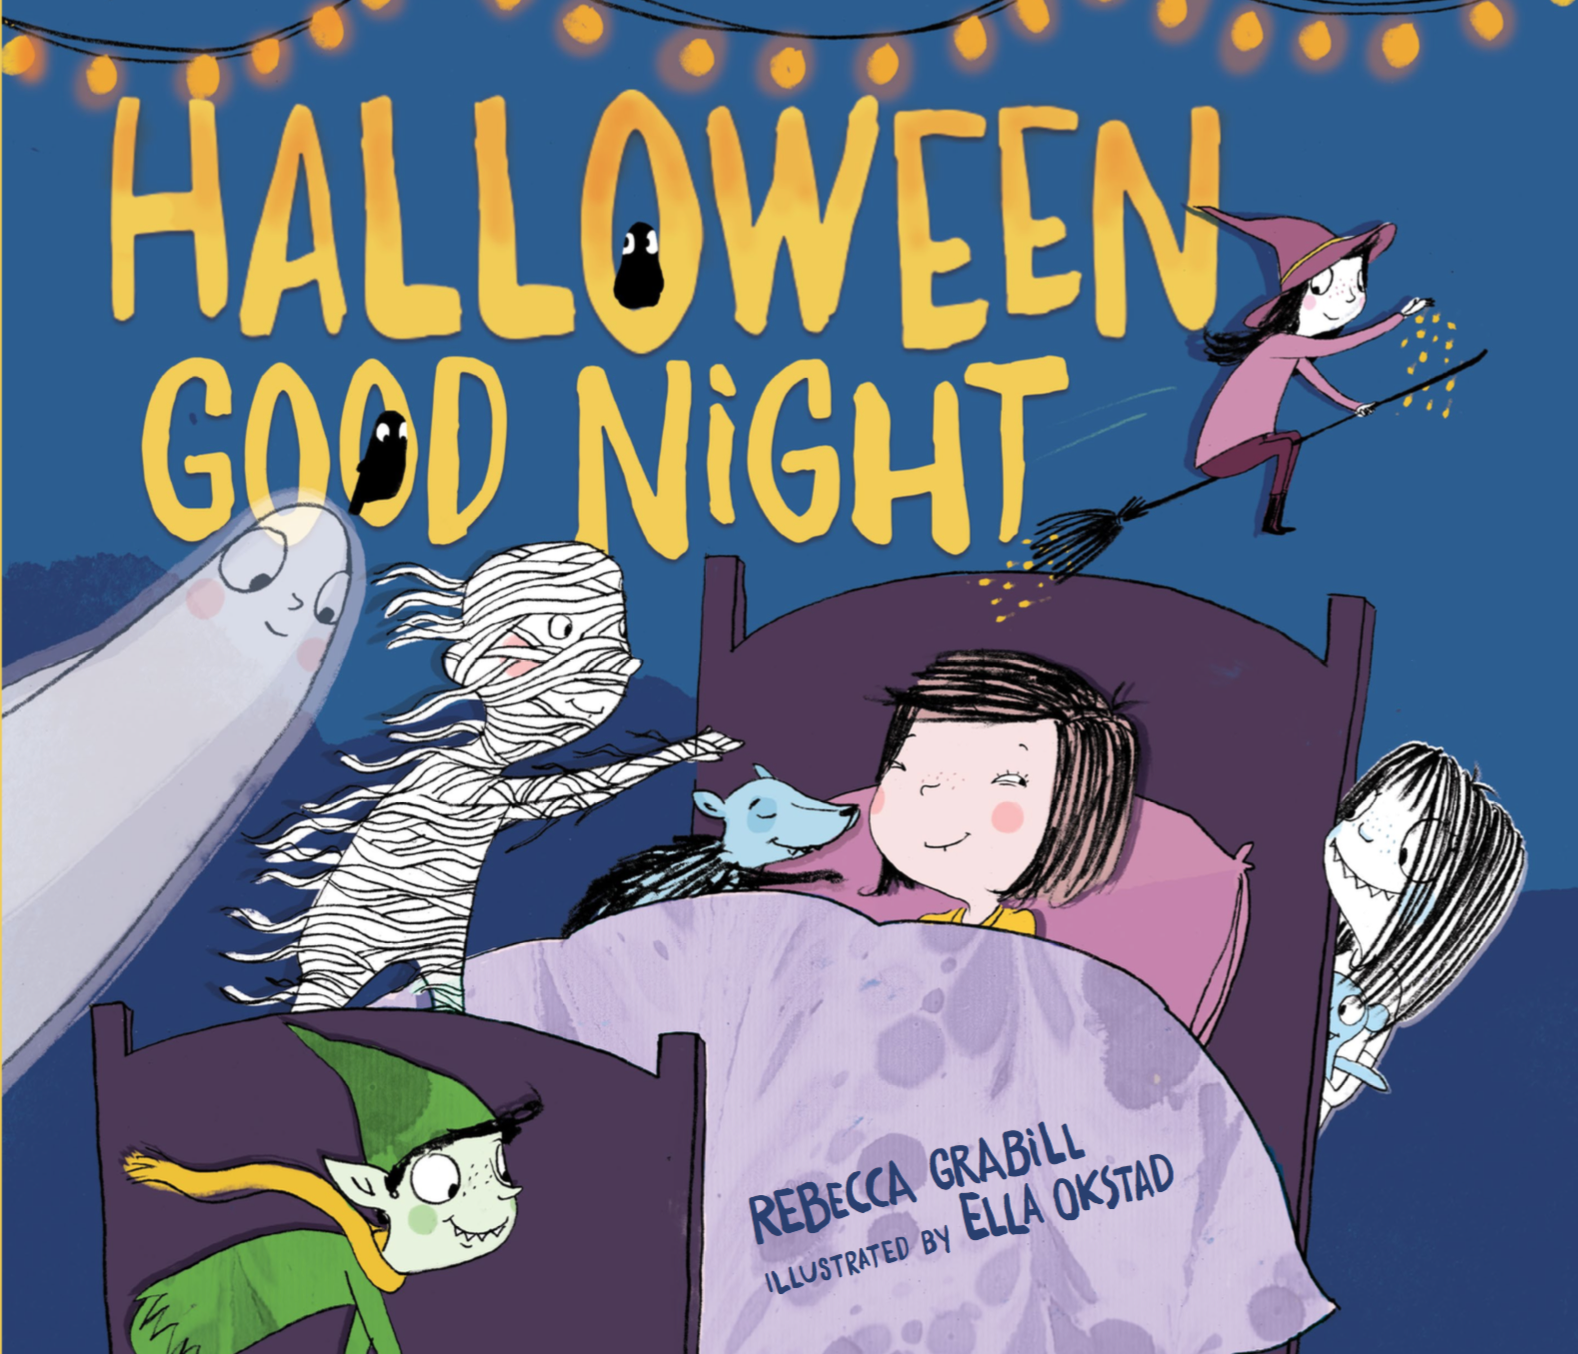 Crazy Awesome Loving It Book Cover For Halloween Good Night!